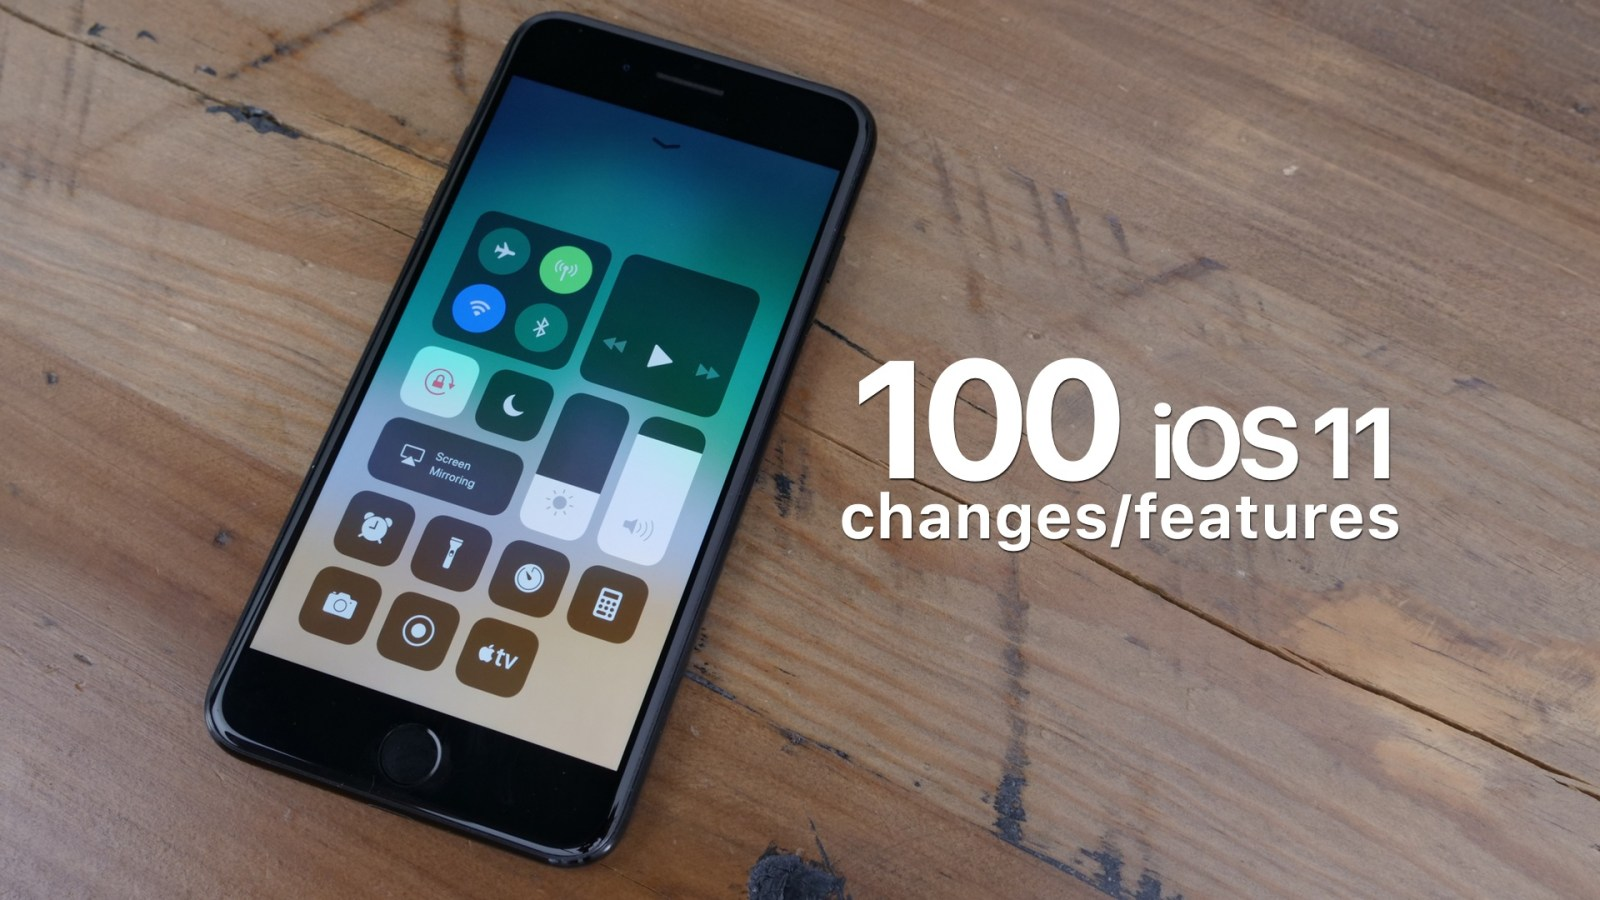 What's new in iOS 11? Hands-on with 100+ features and changes [Video]